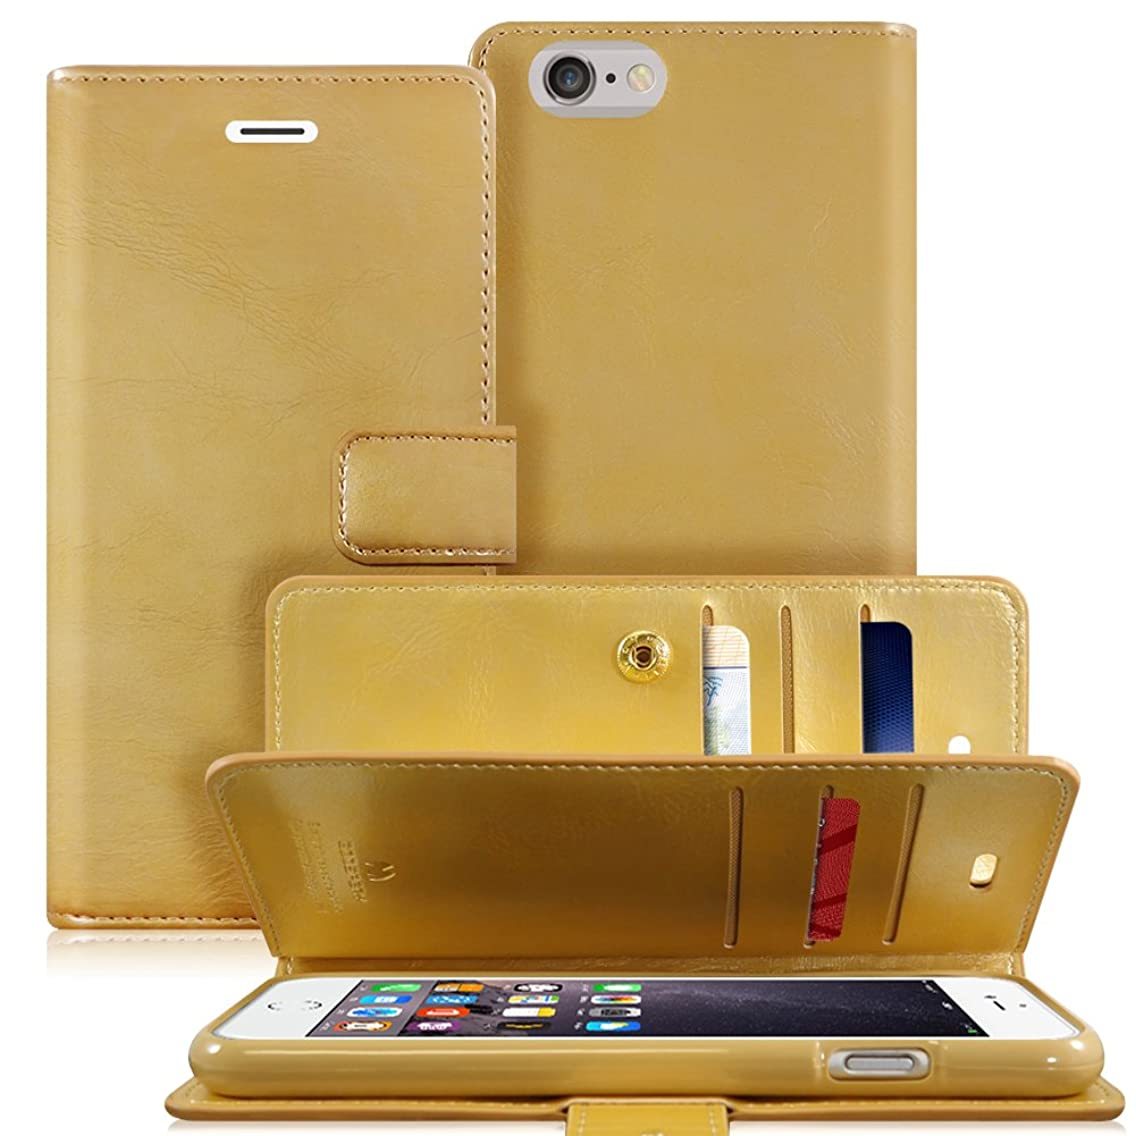 iPhone 6 PLUS / 6S PLUS Case, [Extra Card & Cash Slots] GOOSPERY Mansoor Diary [Double Sided Wallet Case] Soft PU Leather [Drop Protection]Cover for iPhone 6S PLUS / 6 PLUS (5.5